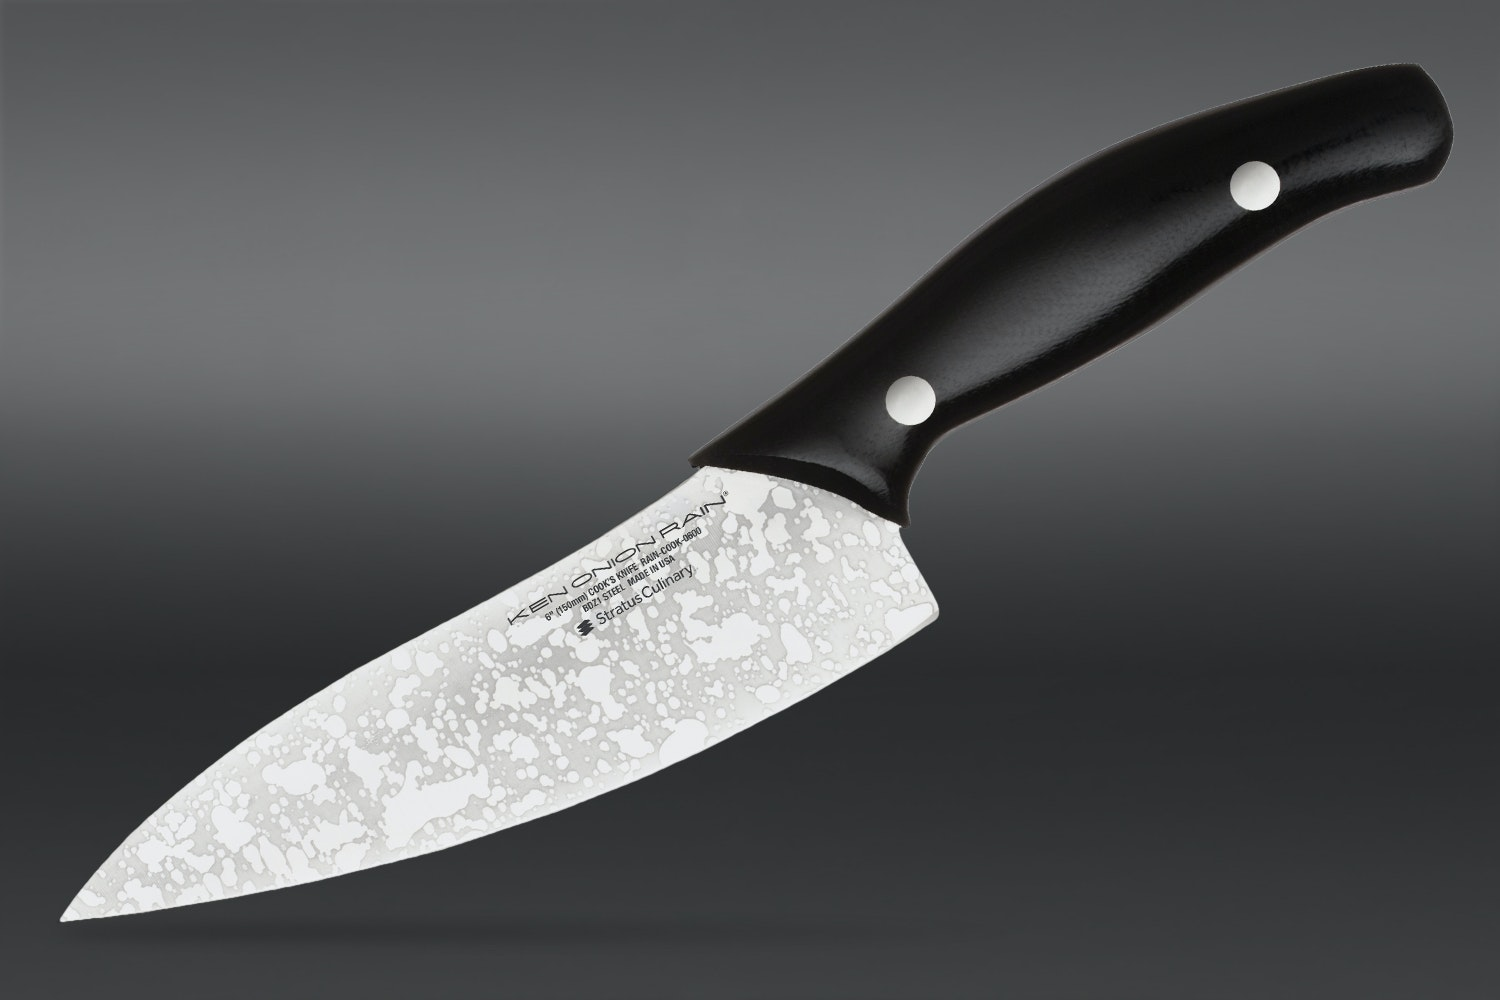 6-inch Cook's Knife (+ $10)